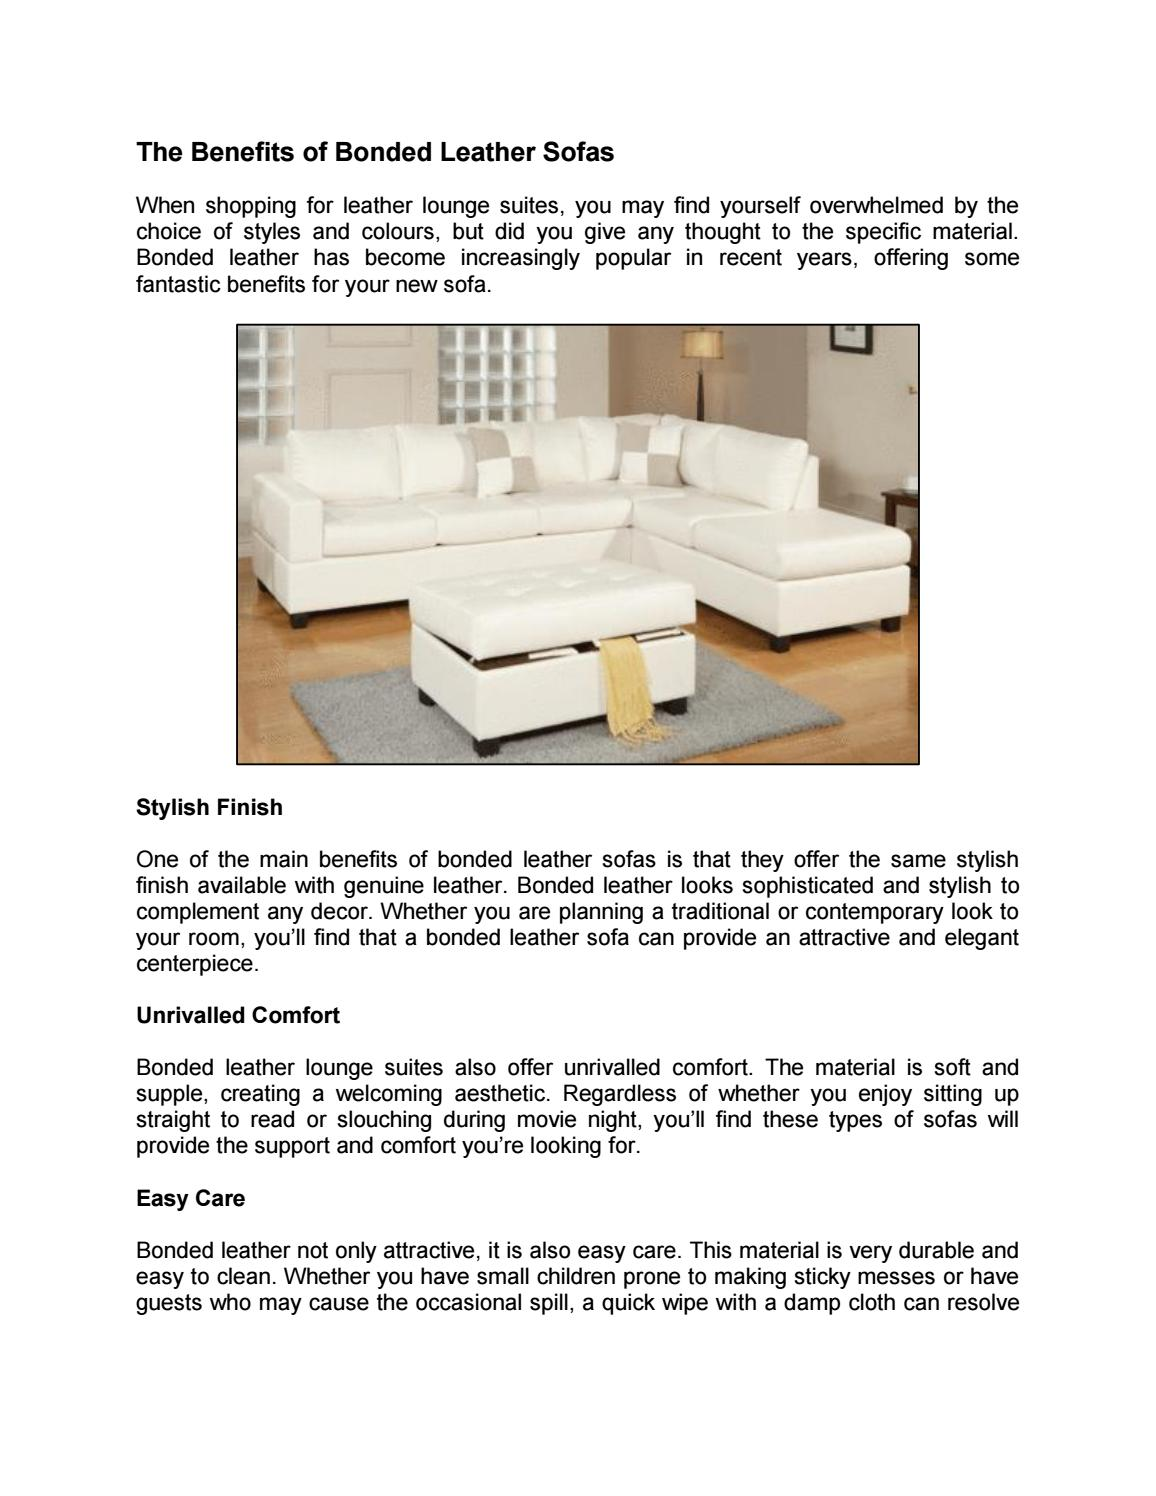 Super The Benefits Of Bonded Leather Sofas By Chaisesofas Issuu Spiritservingveterans Wood Chair Design Ideas Spiritservingveteransorg